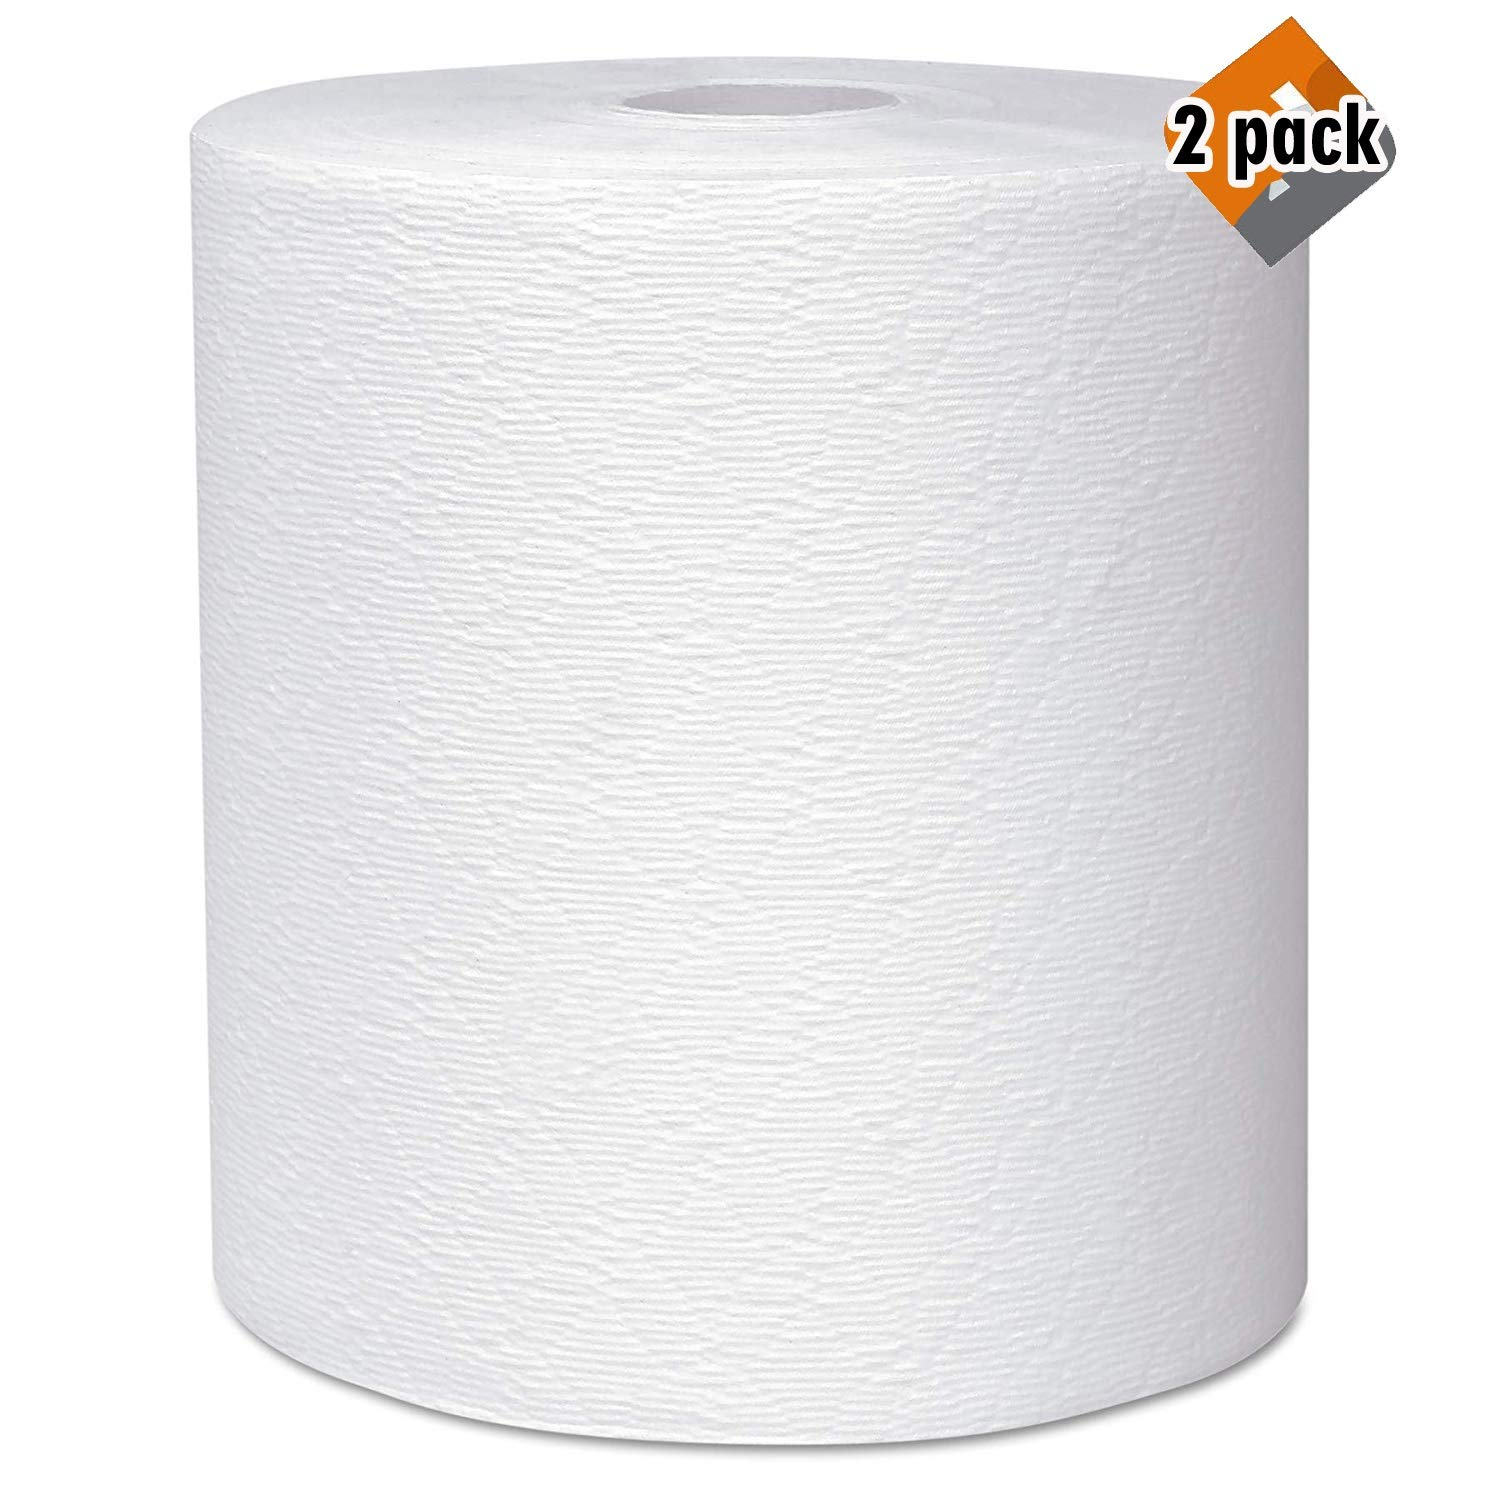 Scott 50606 Essential Plus Hard Roll Towels 8'' x 600 ft, 1 3/4'' Core Dia, White (Case of 6 Rolls) - 2 Pack by Scott